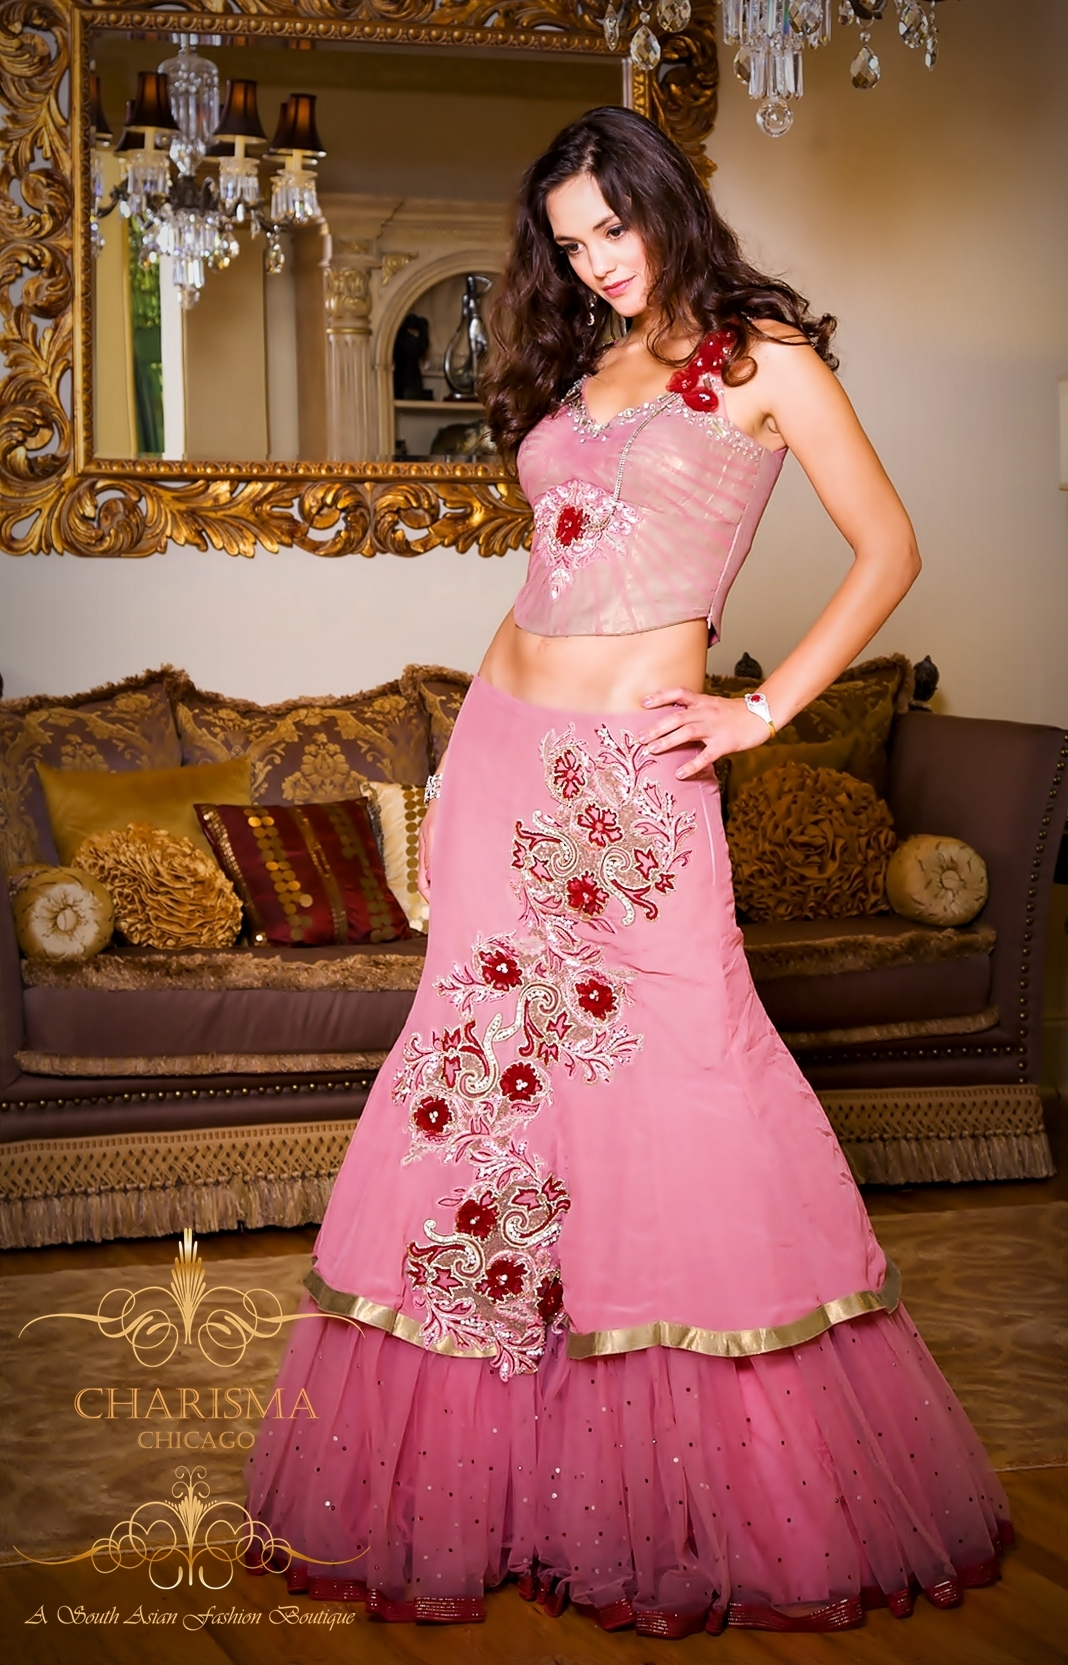 Charisma Indian Clothing Boutique - Westmont, IL